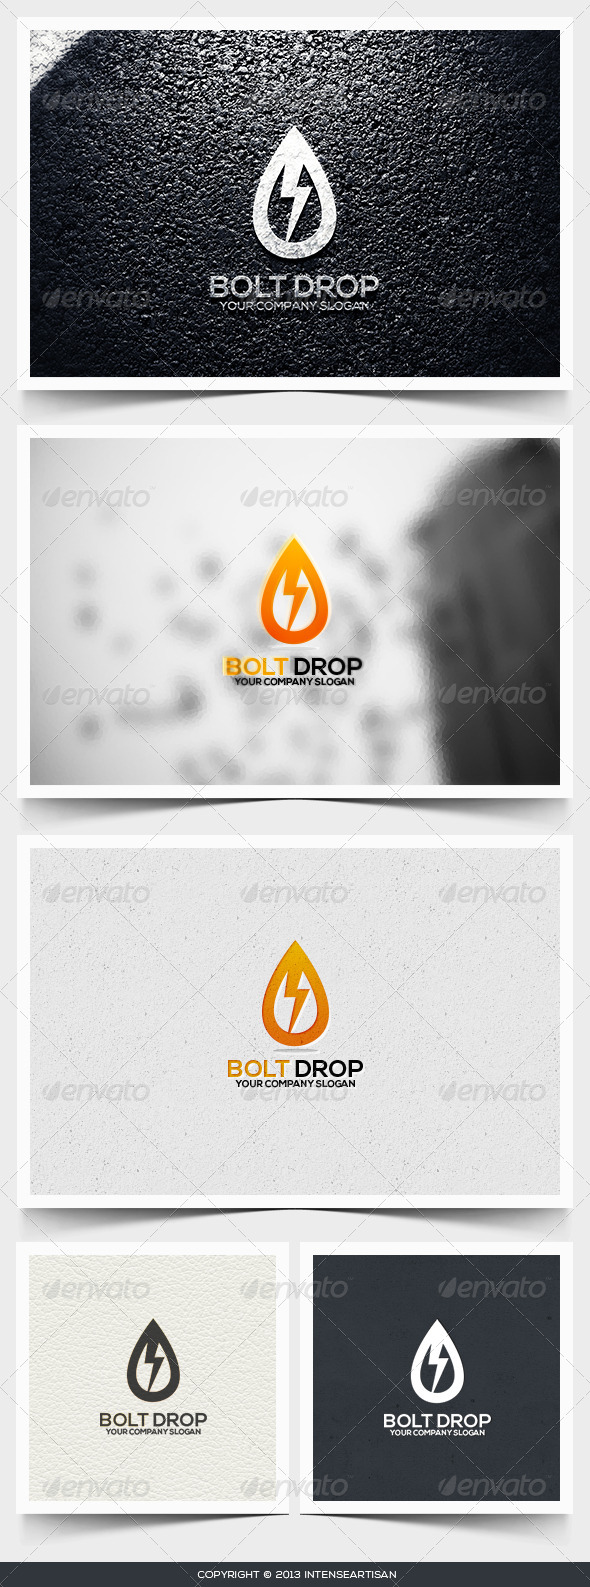 Bolt Drop Logo Template